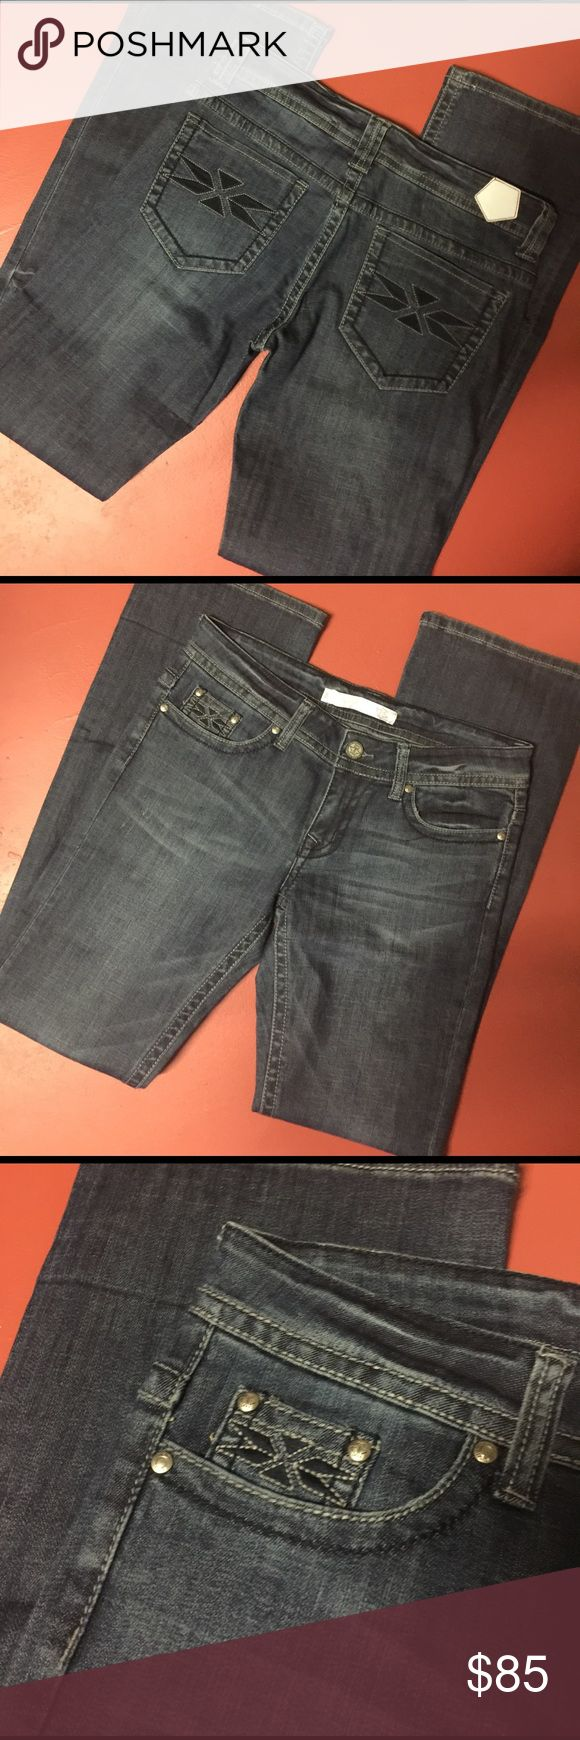 "Tin Haul Boot Cut Jeans NWOT. Never worn. Size 31L. Inseam is 35"". Excellent condition. Tin Haul Jeans Boot Cut"